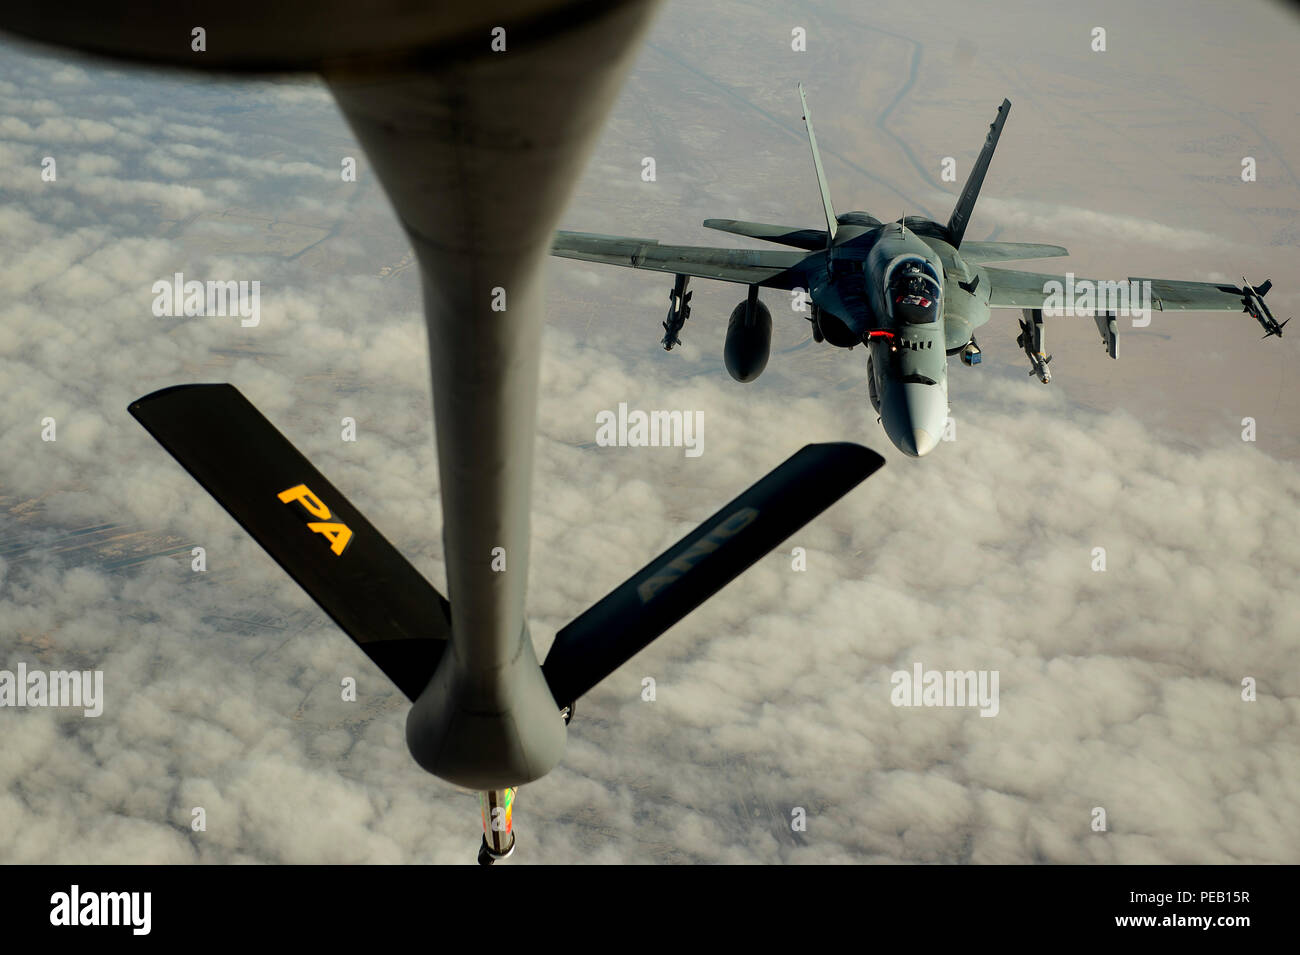 A U.S. Air Force KC-135 Stratotanker from the 340th Expeditionary Air Refueling Squadron prepares to refuel an F-18 from the Royal Canadian Air Force over Southwest Asia in support of Operation Inherent Resolve, Dec. 4, 2015. OIR is the coalition intervention against Daesh. (U.S. Air Force photo by Tech. Sgt. Nathan Lipscomb) Stock Photo